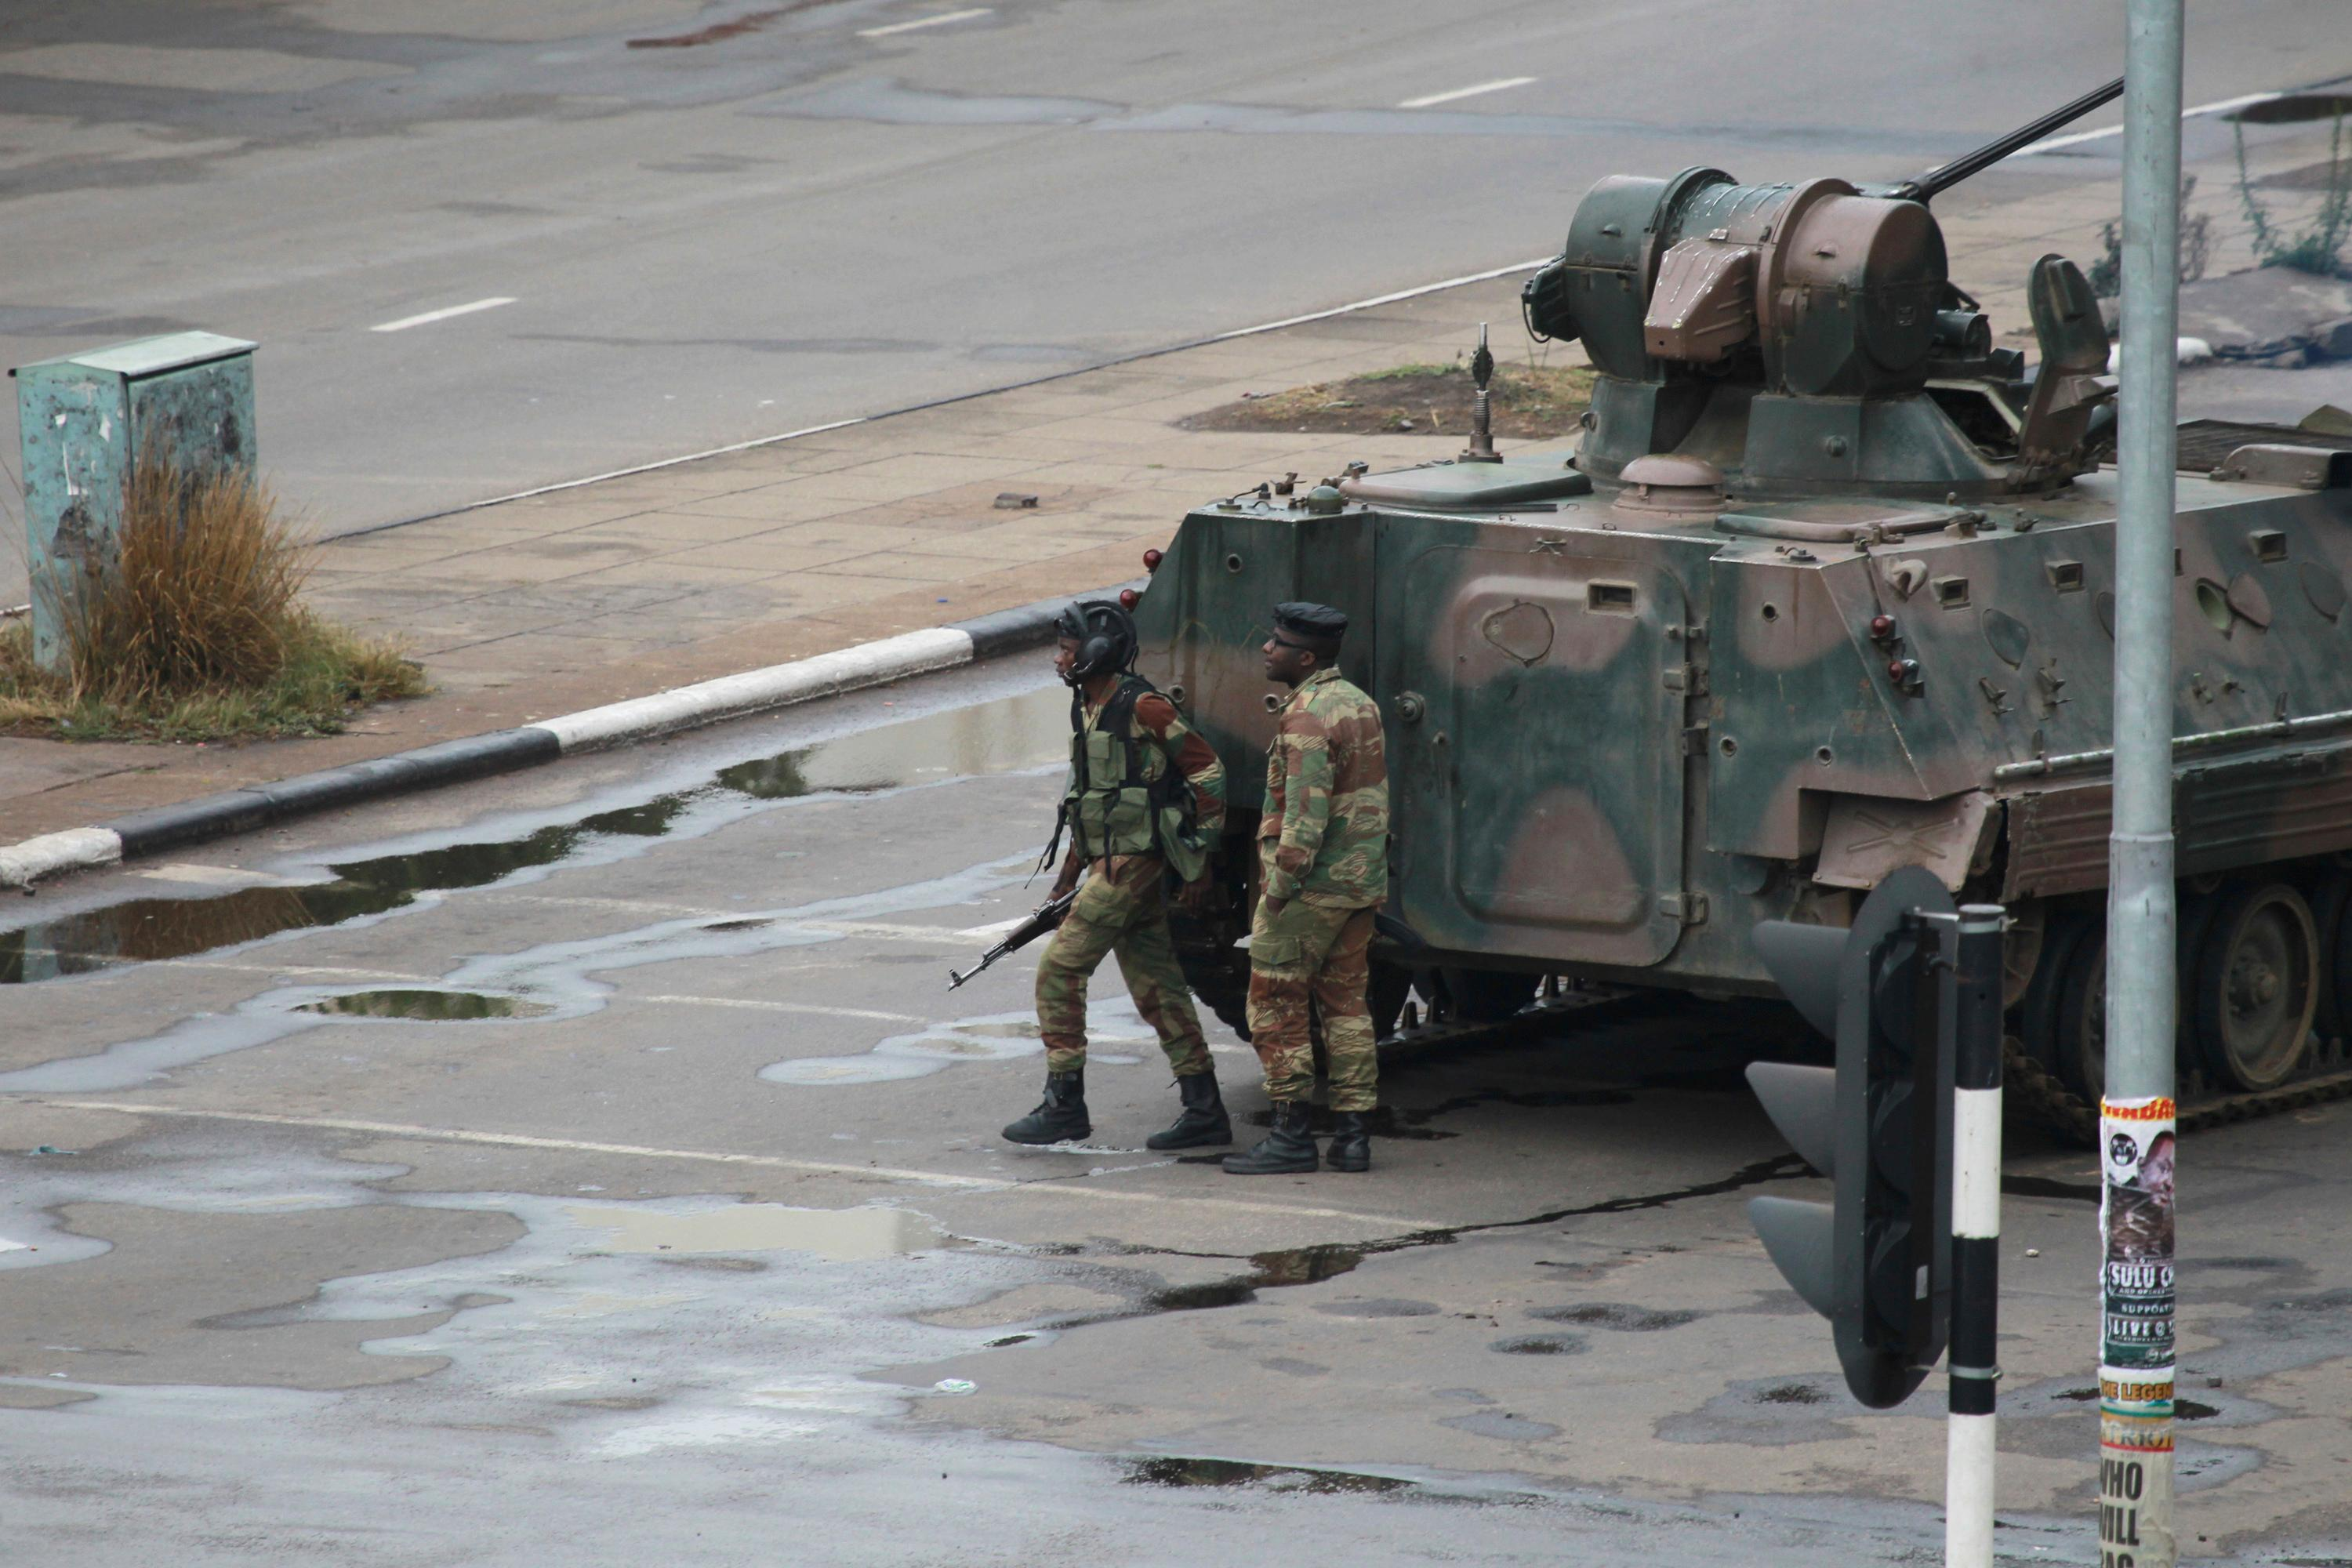 A military tank is seen with armed soldiers on the road leading to President Robert Mugabe's office in Harare, Zimbabwe Wednesday, Nov. 15, 2017. (AP Photo/Tsvangirayi Mukwazhi)<p></p>